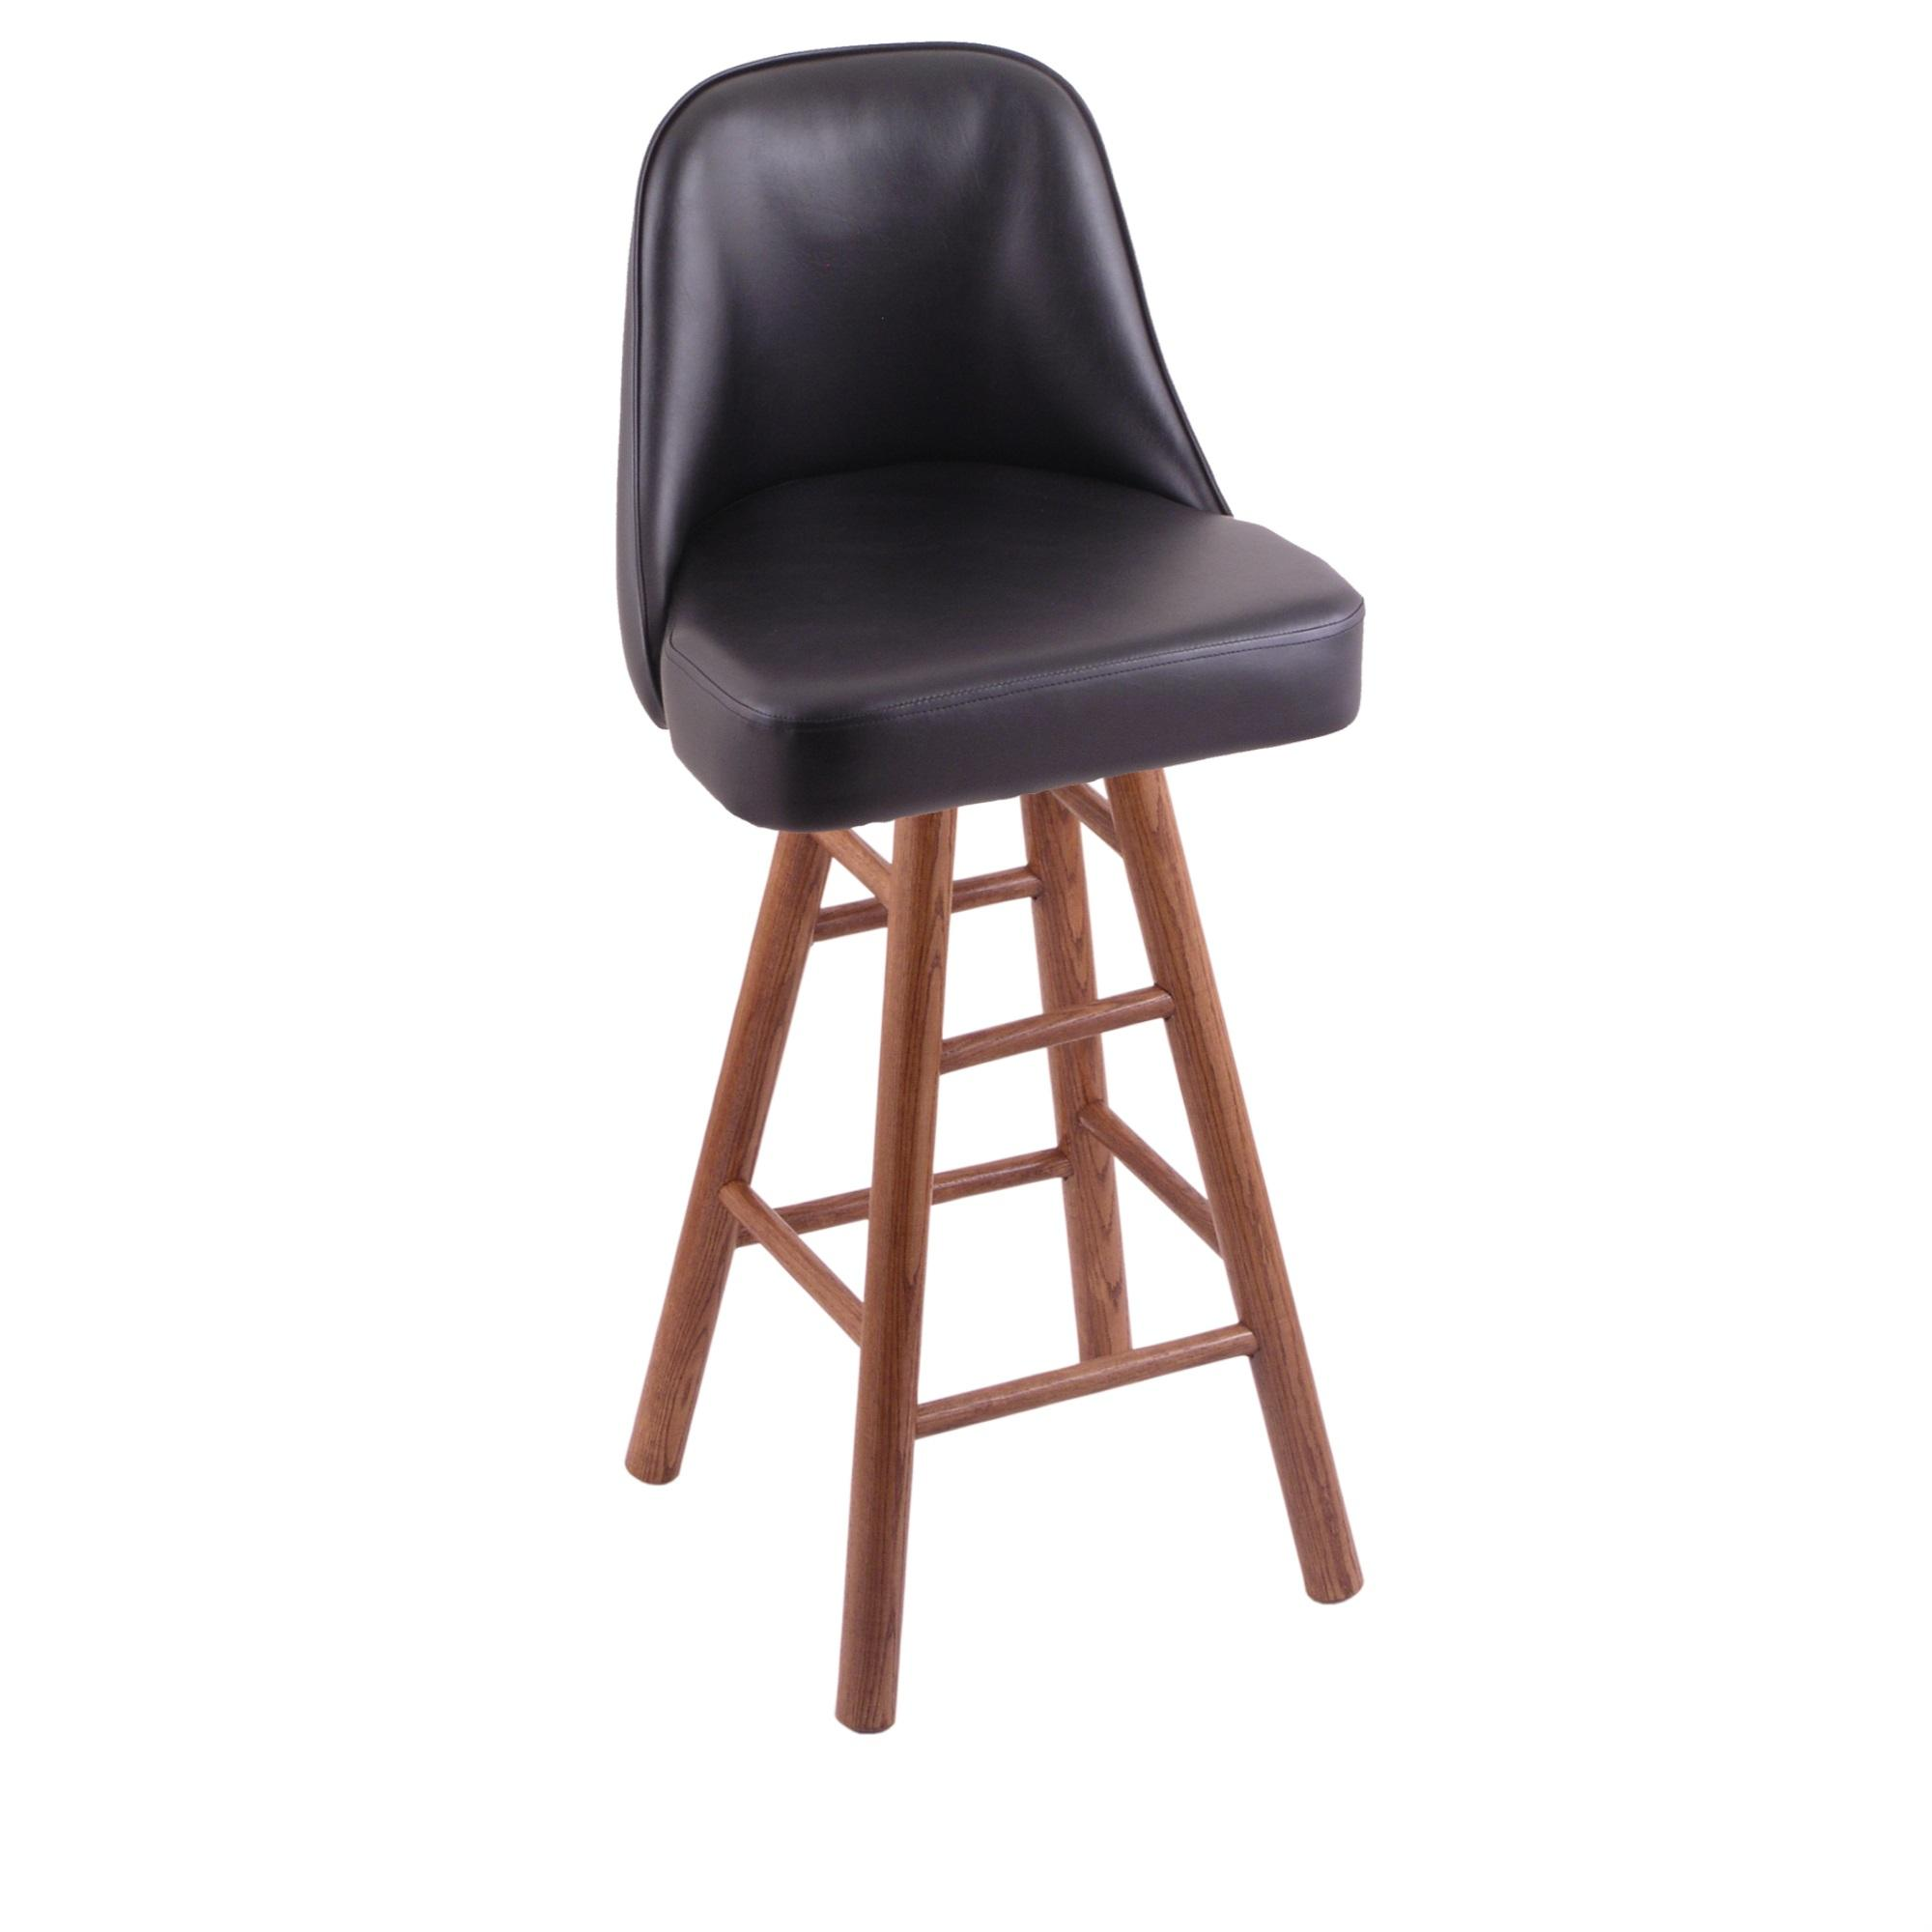 Grizzly Bar Stool with Smooth Oak Legs, Medium Finish, and 360 Swivel